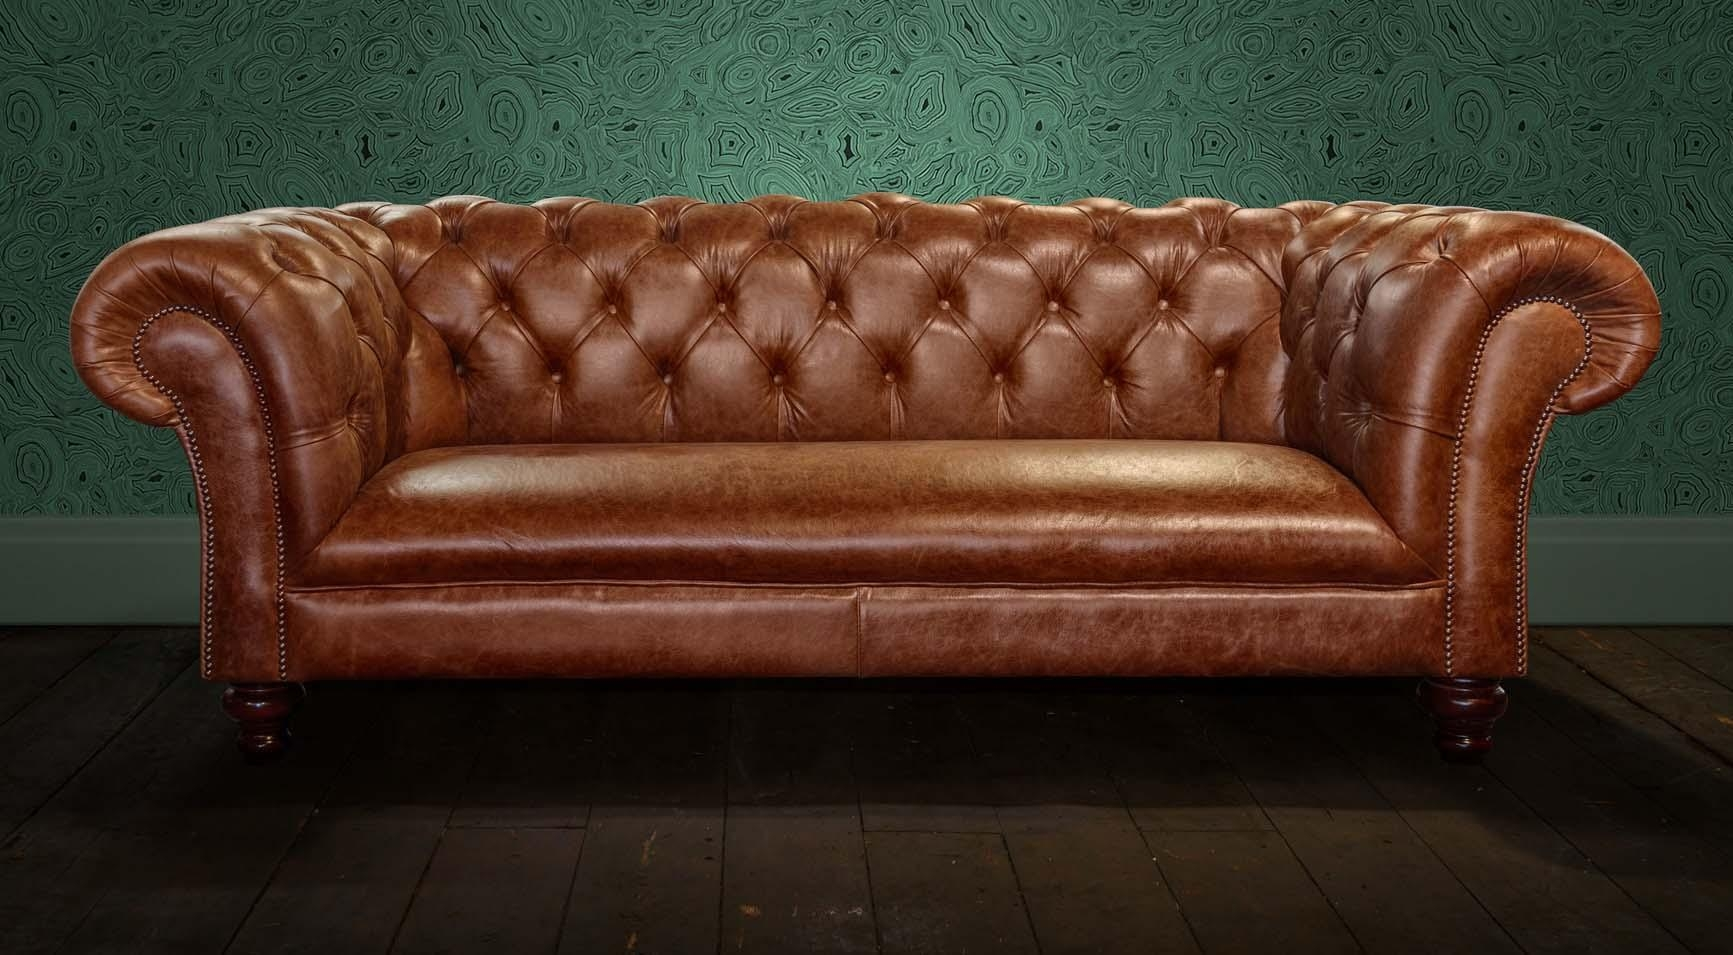 Chesterfields Of England | The Original Chesterfield Company For Leather Chesterfield Sofas (Image 9 of 20)